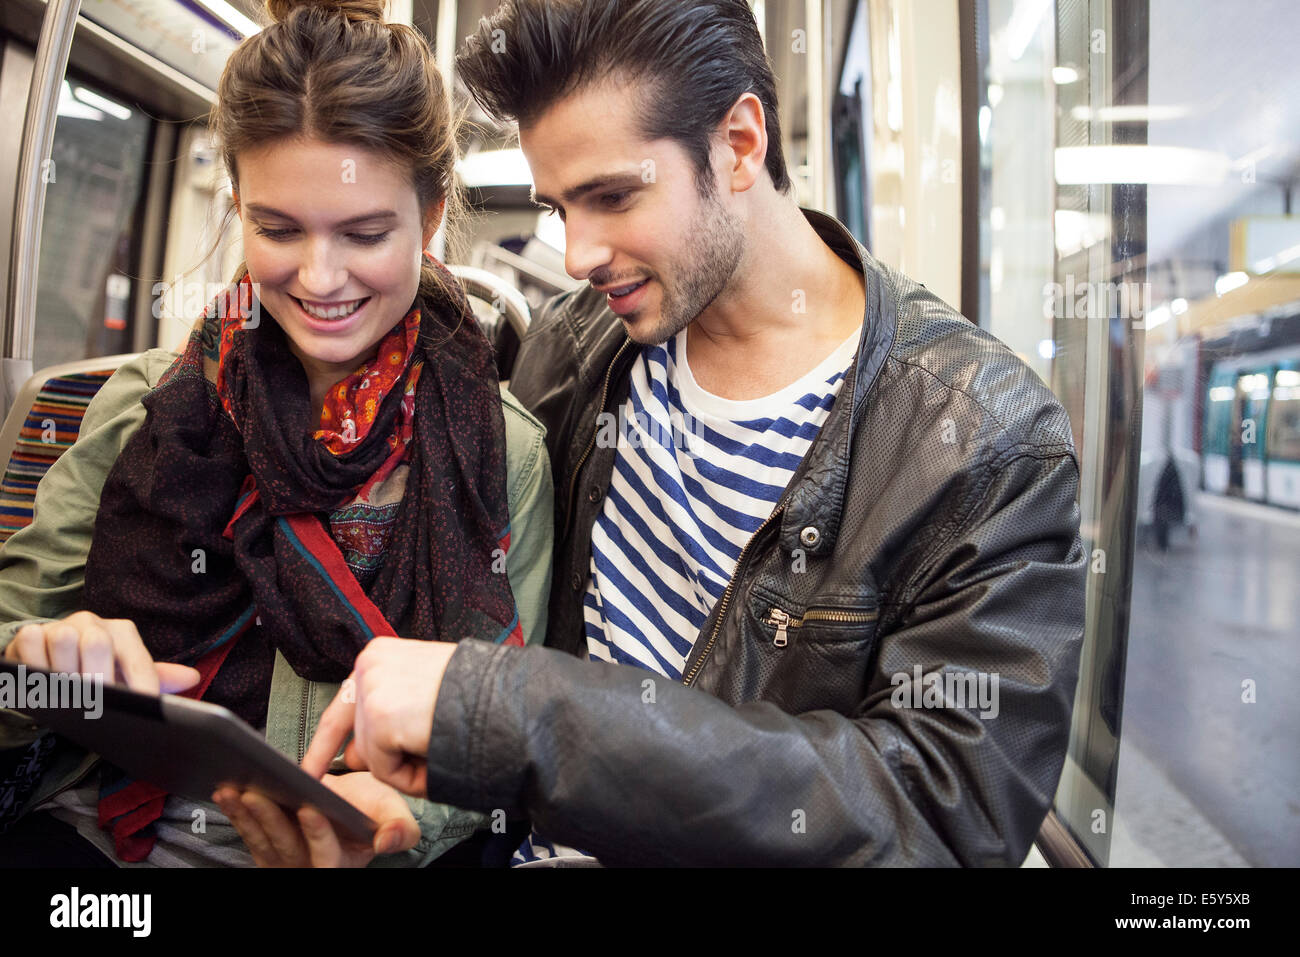 Jeune couple riding subway looking at digital tablet together Photo Stock